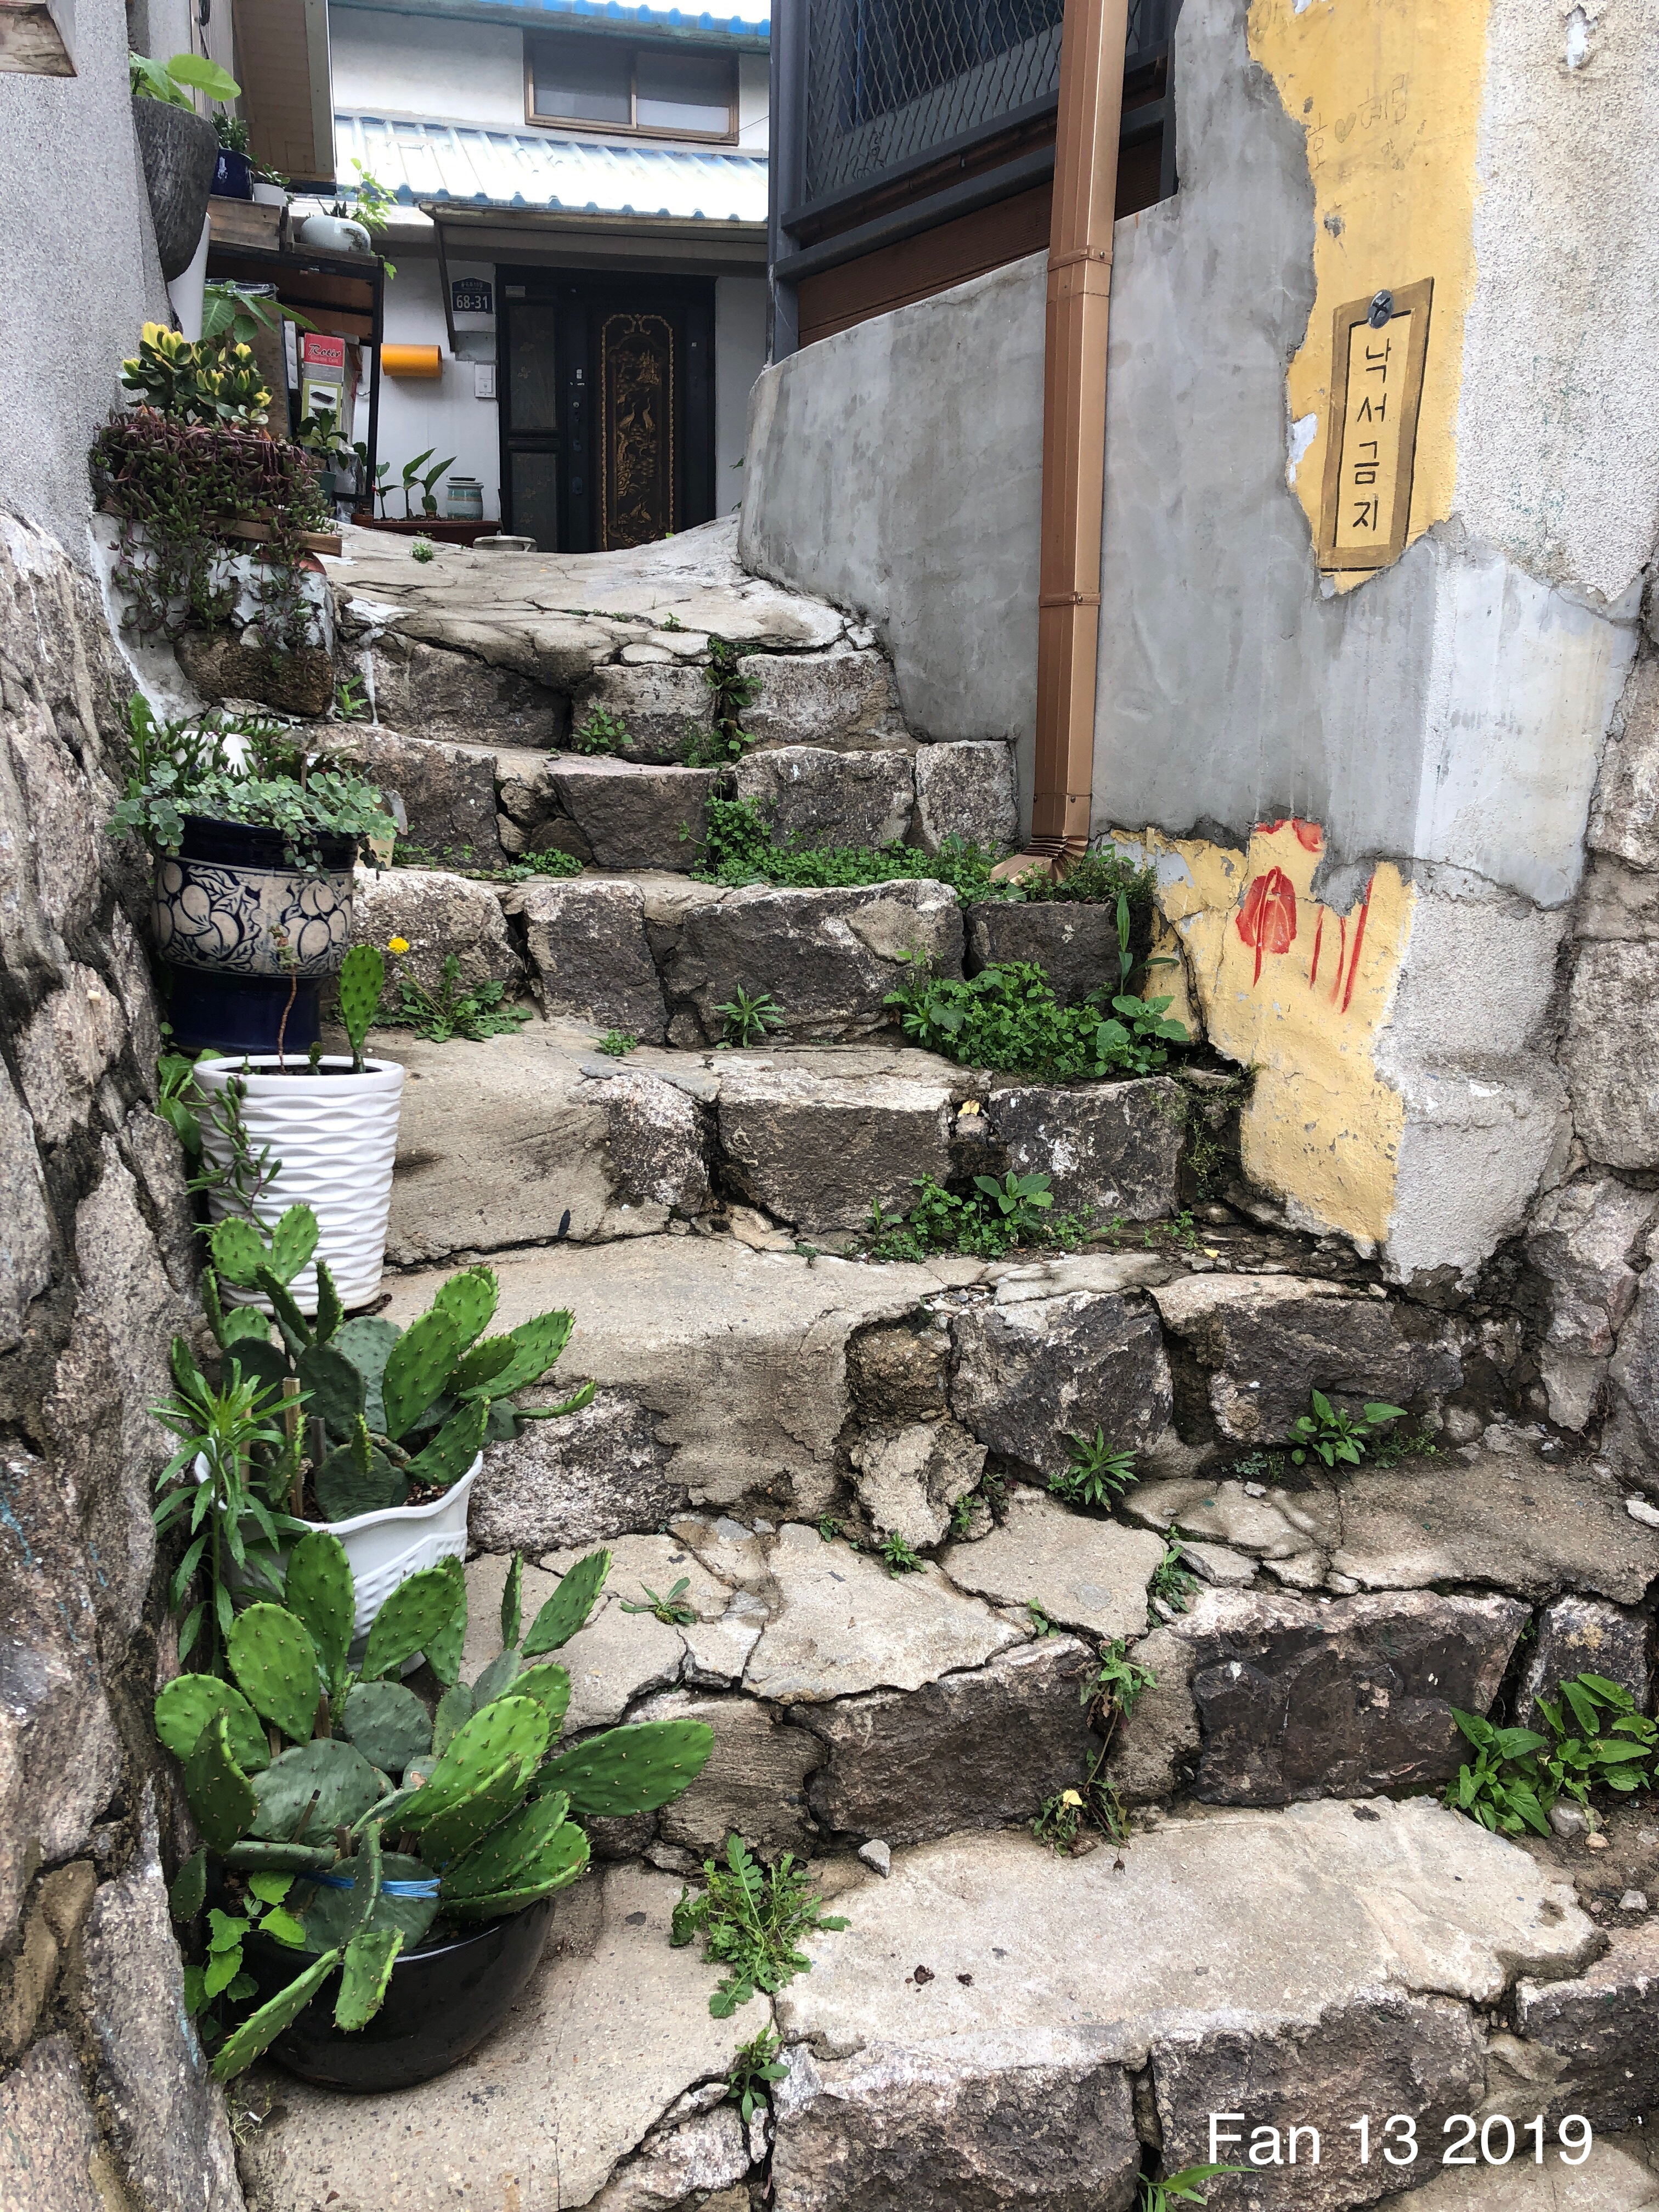 Filming Location For Cinderella And The Four Knights The Ihwa Mural Village